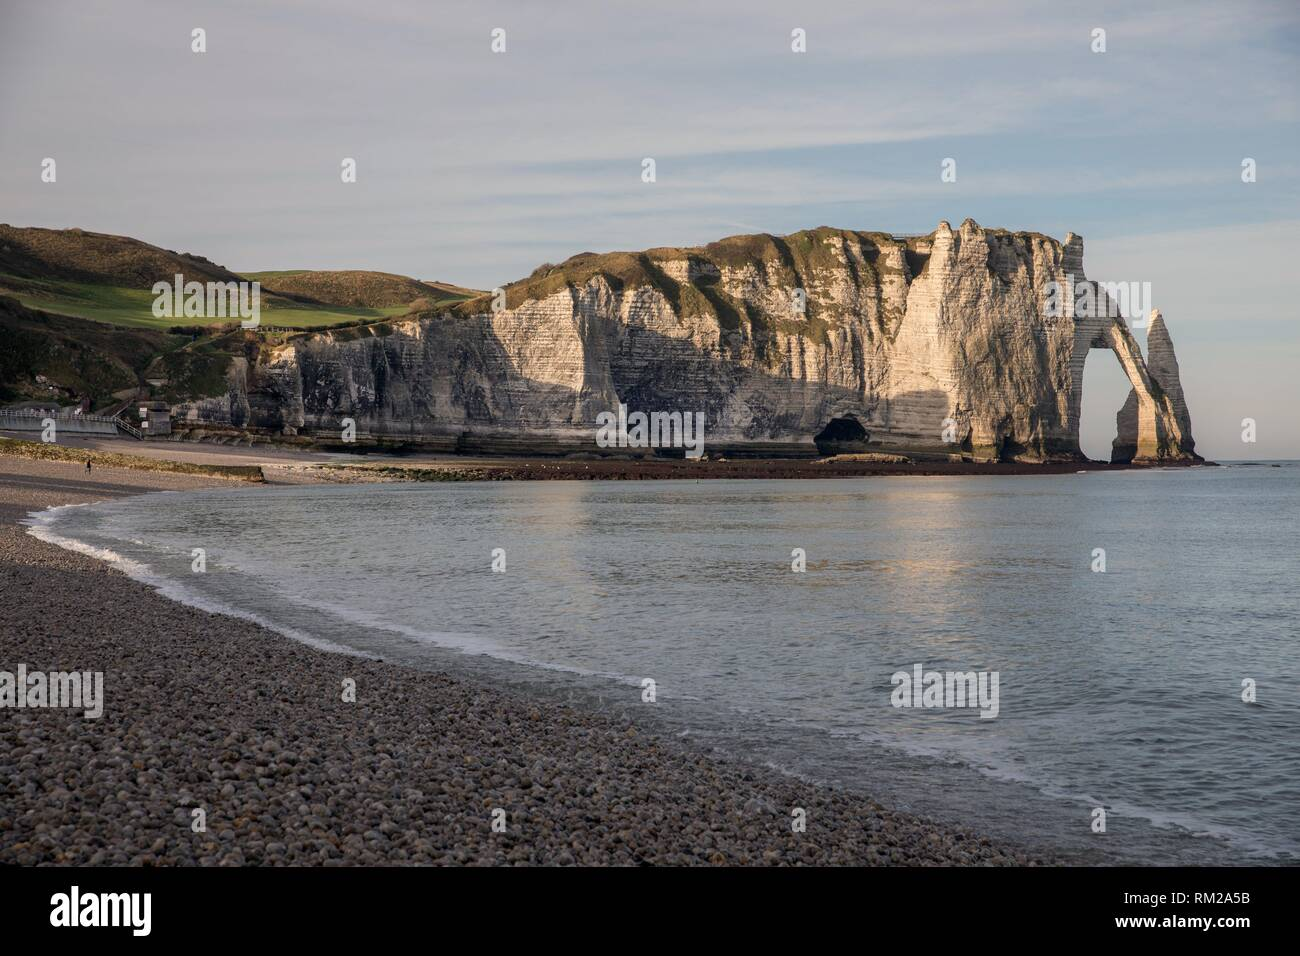 Porte d´Aval (Agal gate), Aiguille (needle) and cliffs. Etretat, Normandy, France - Stock Image